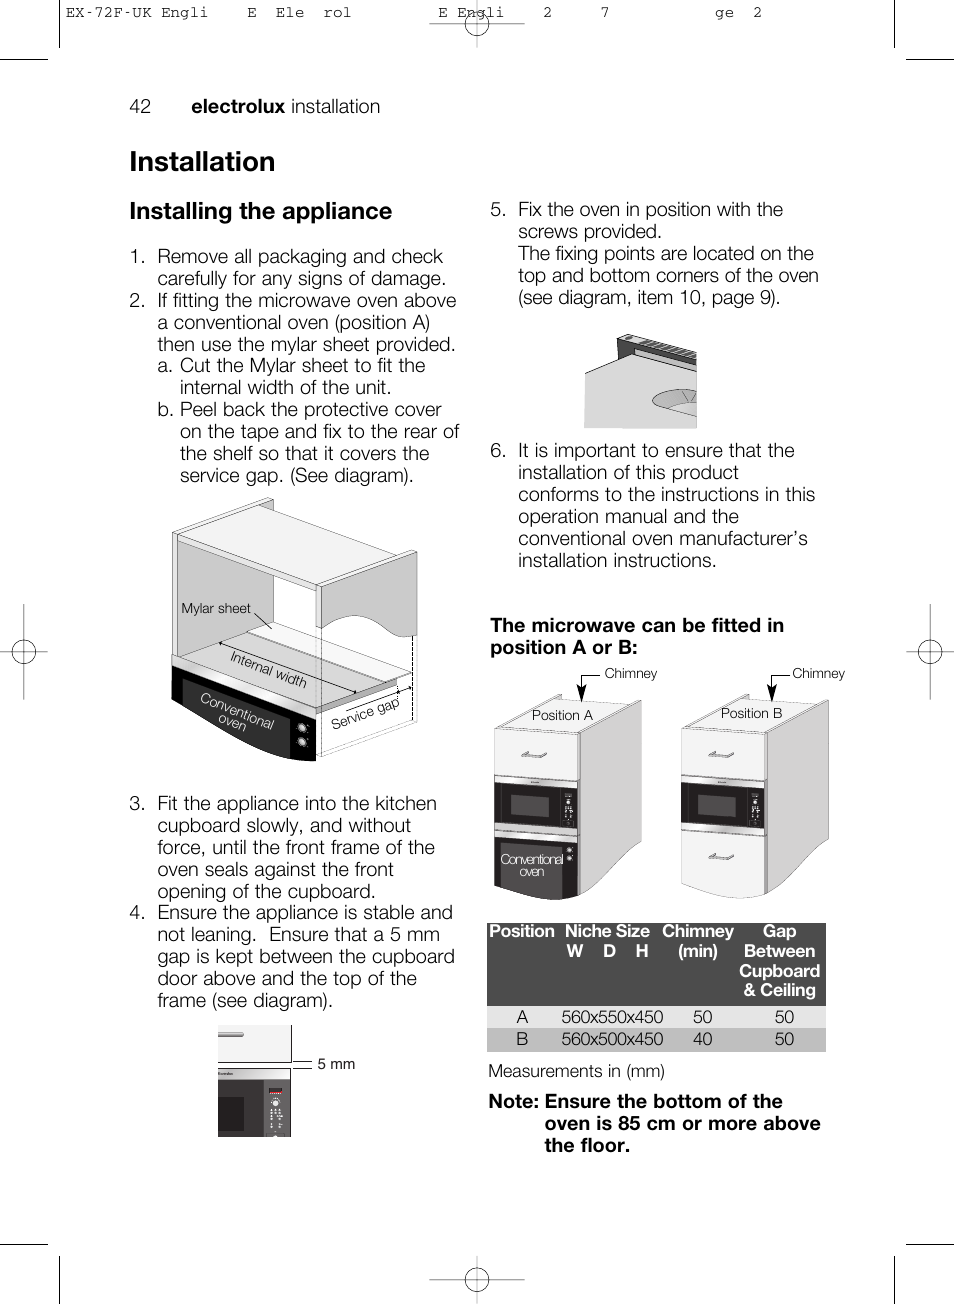 Installation Installing The Appliance Electrolux Ems26405 User Wiring Diagram Photos For Help Your Manual Page 42 52